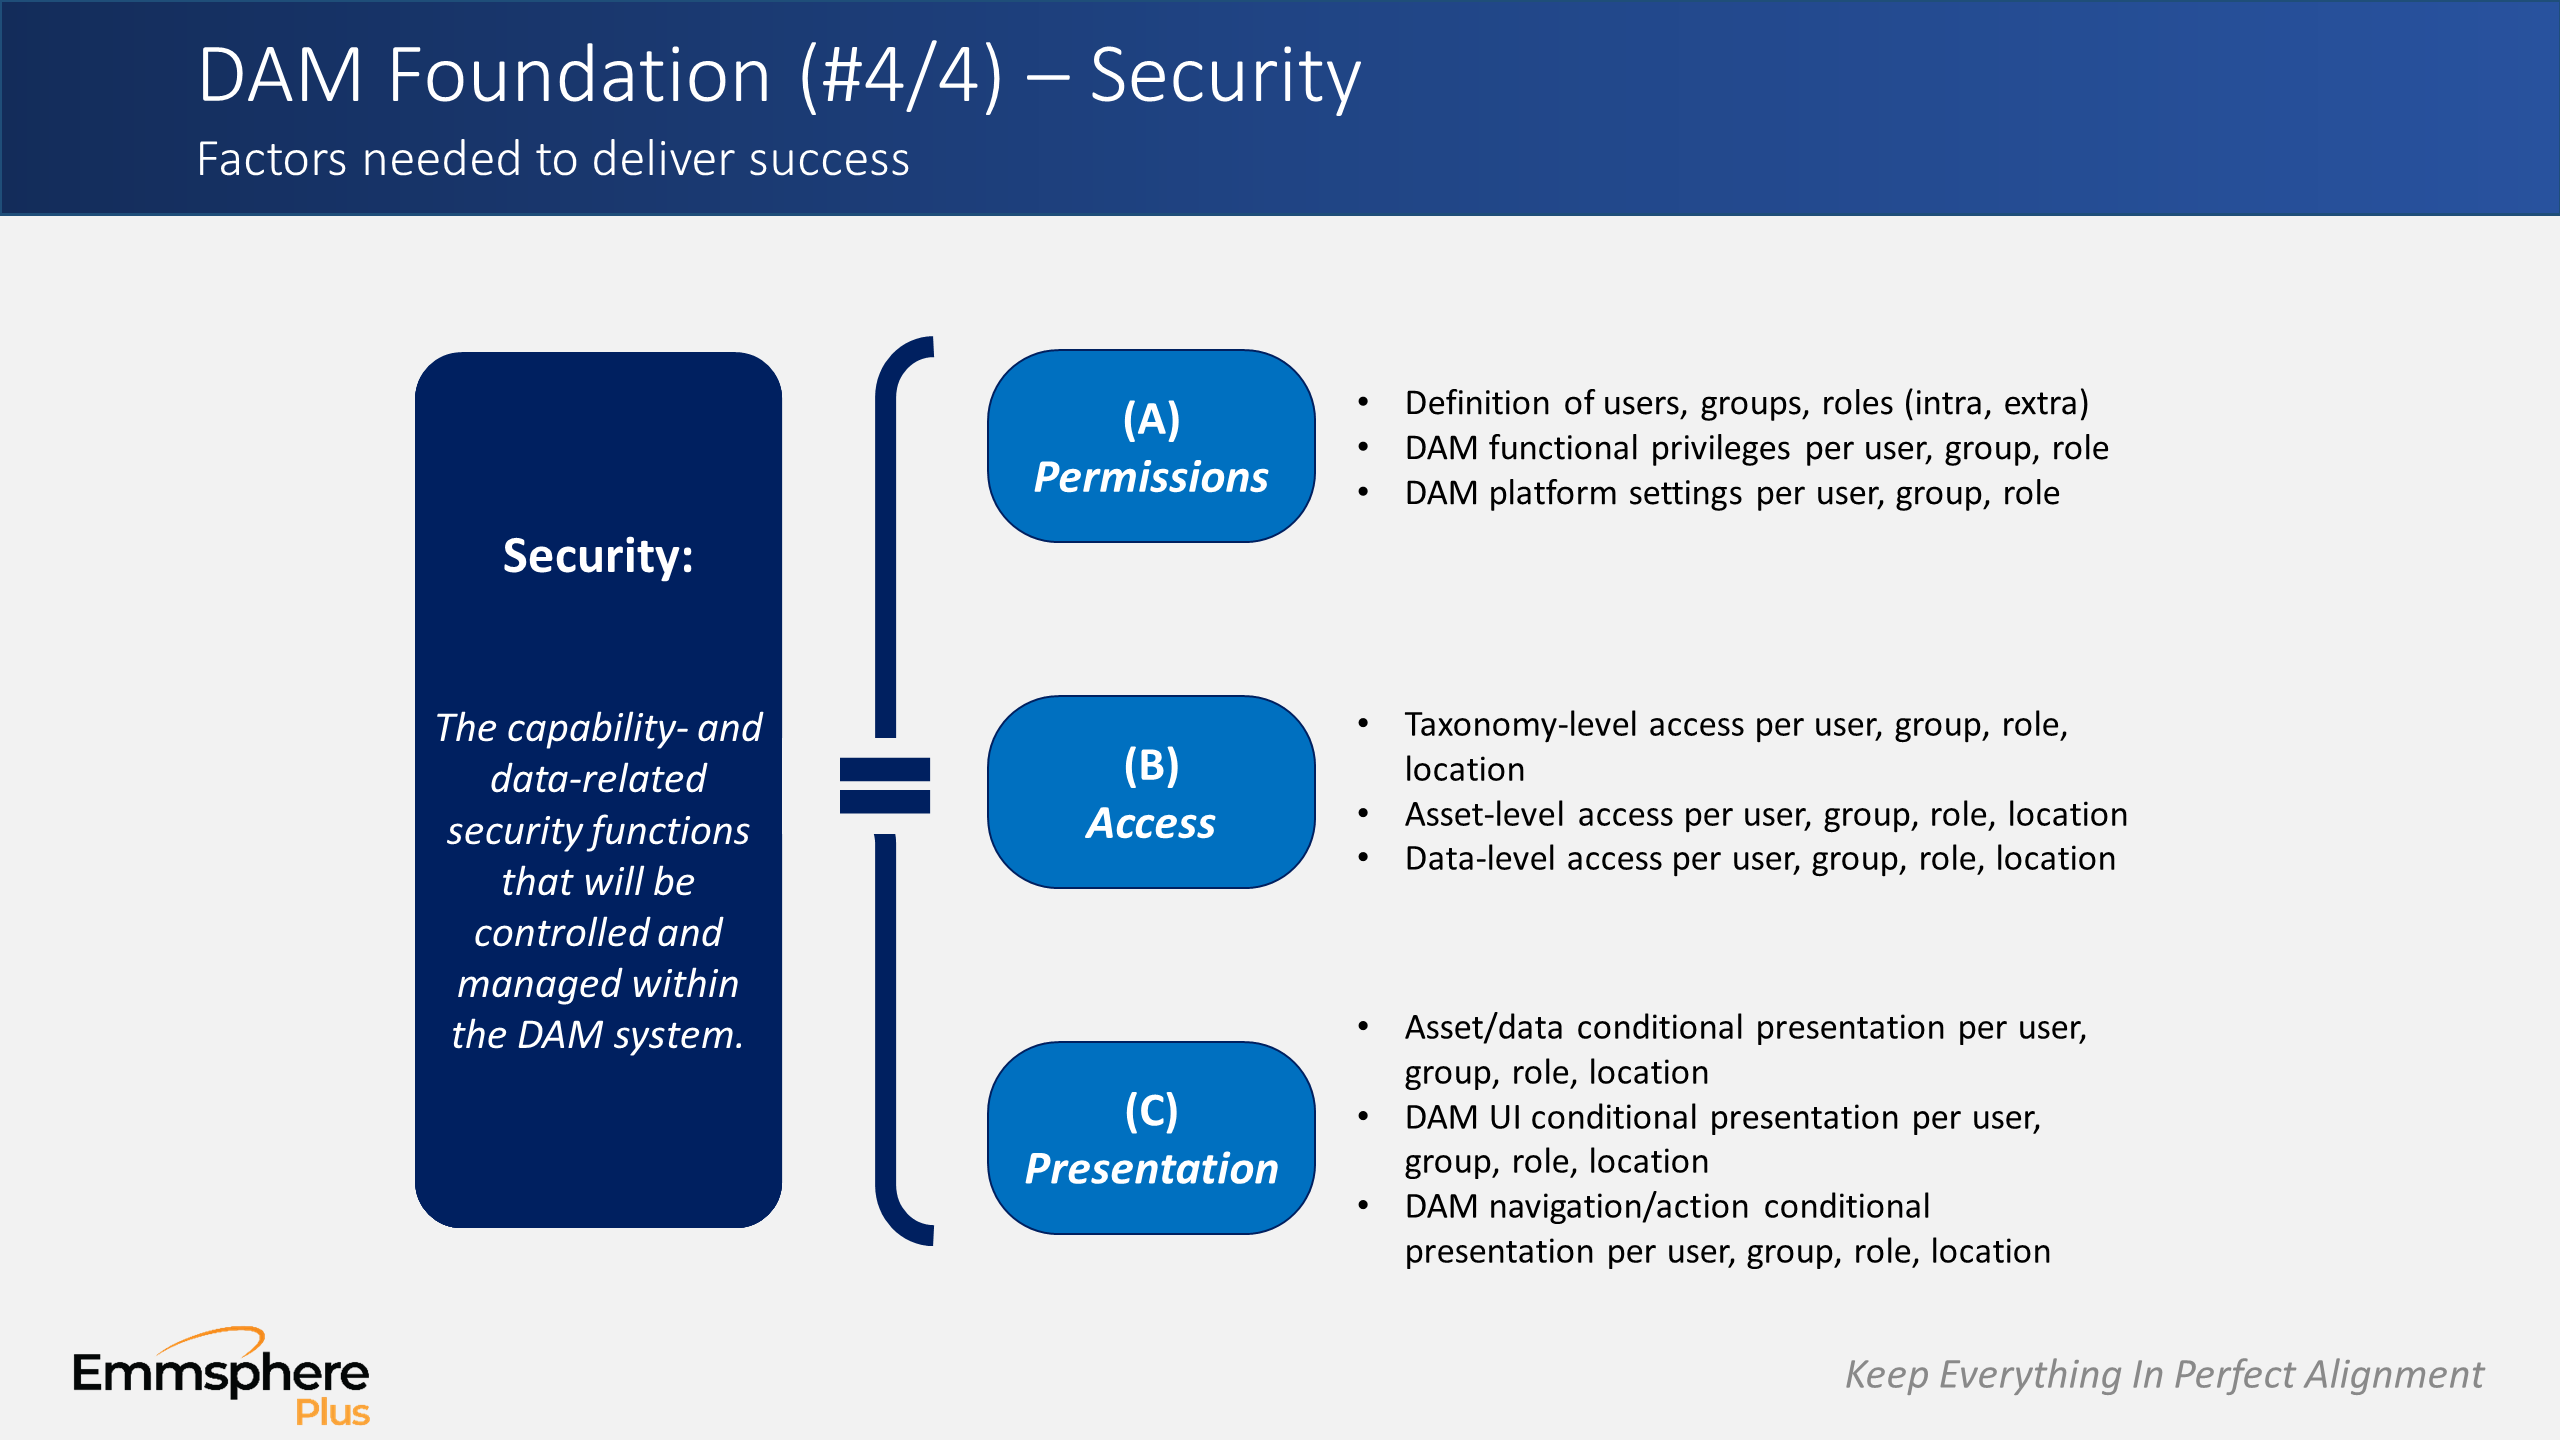 DAM Perspectives Part 4 – Security